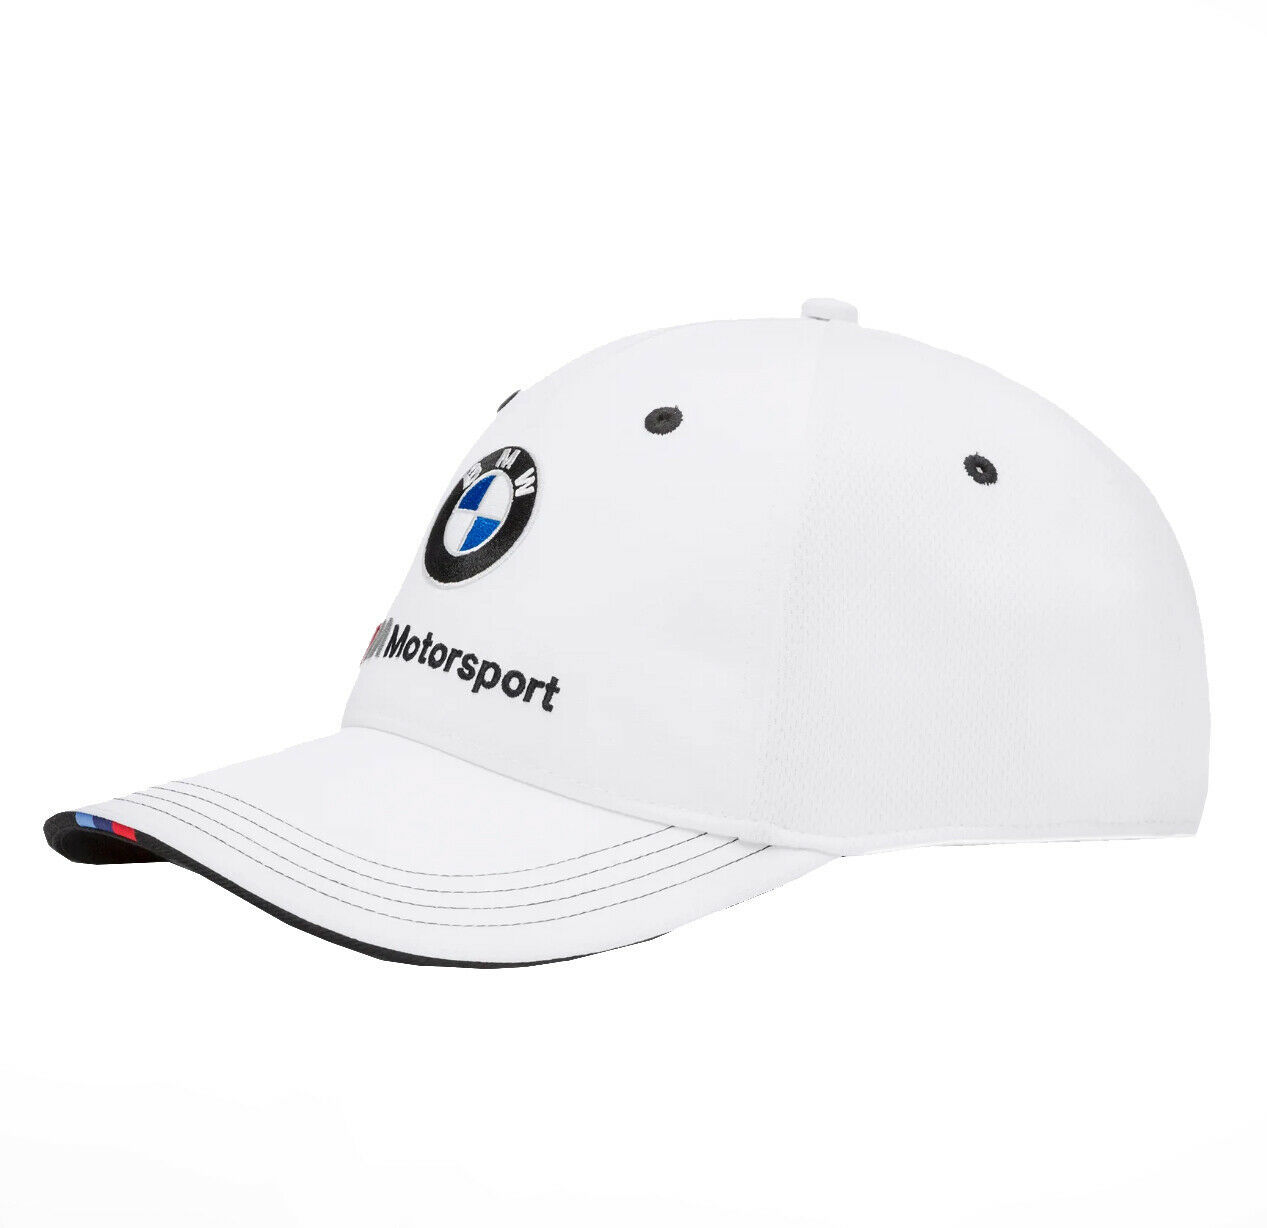 PUMA BMW M BB Dad Cap Motorsport Sports Car Logo Strap Back White Baseball Hat